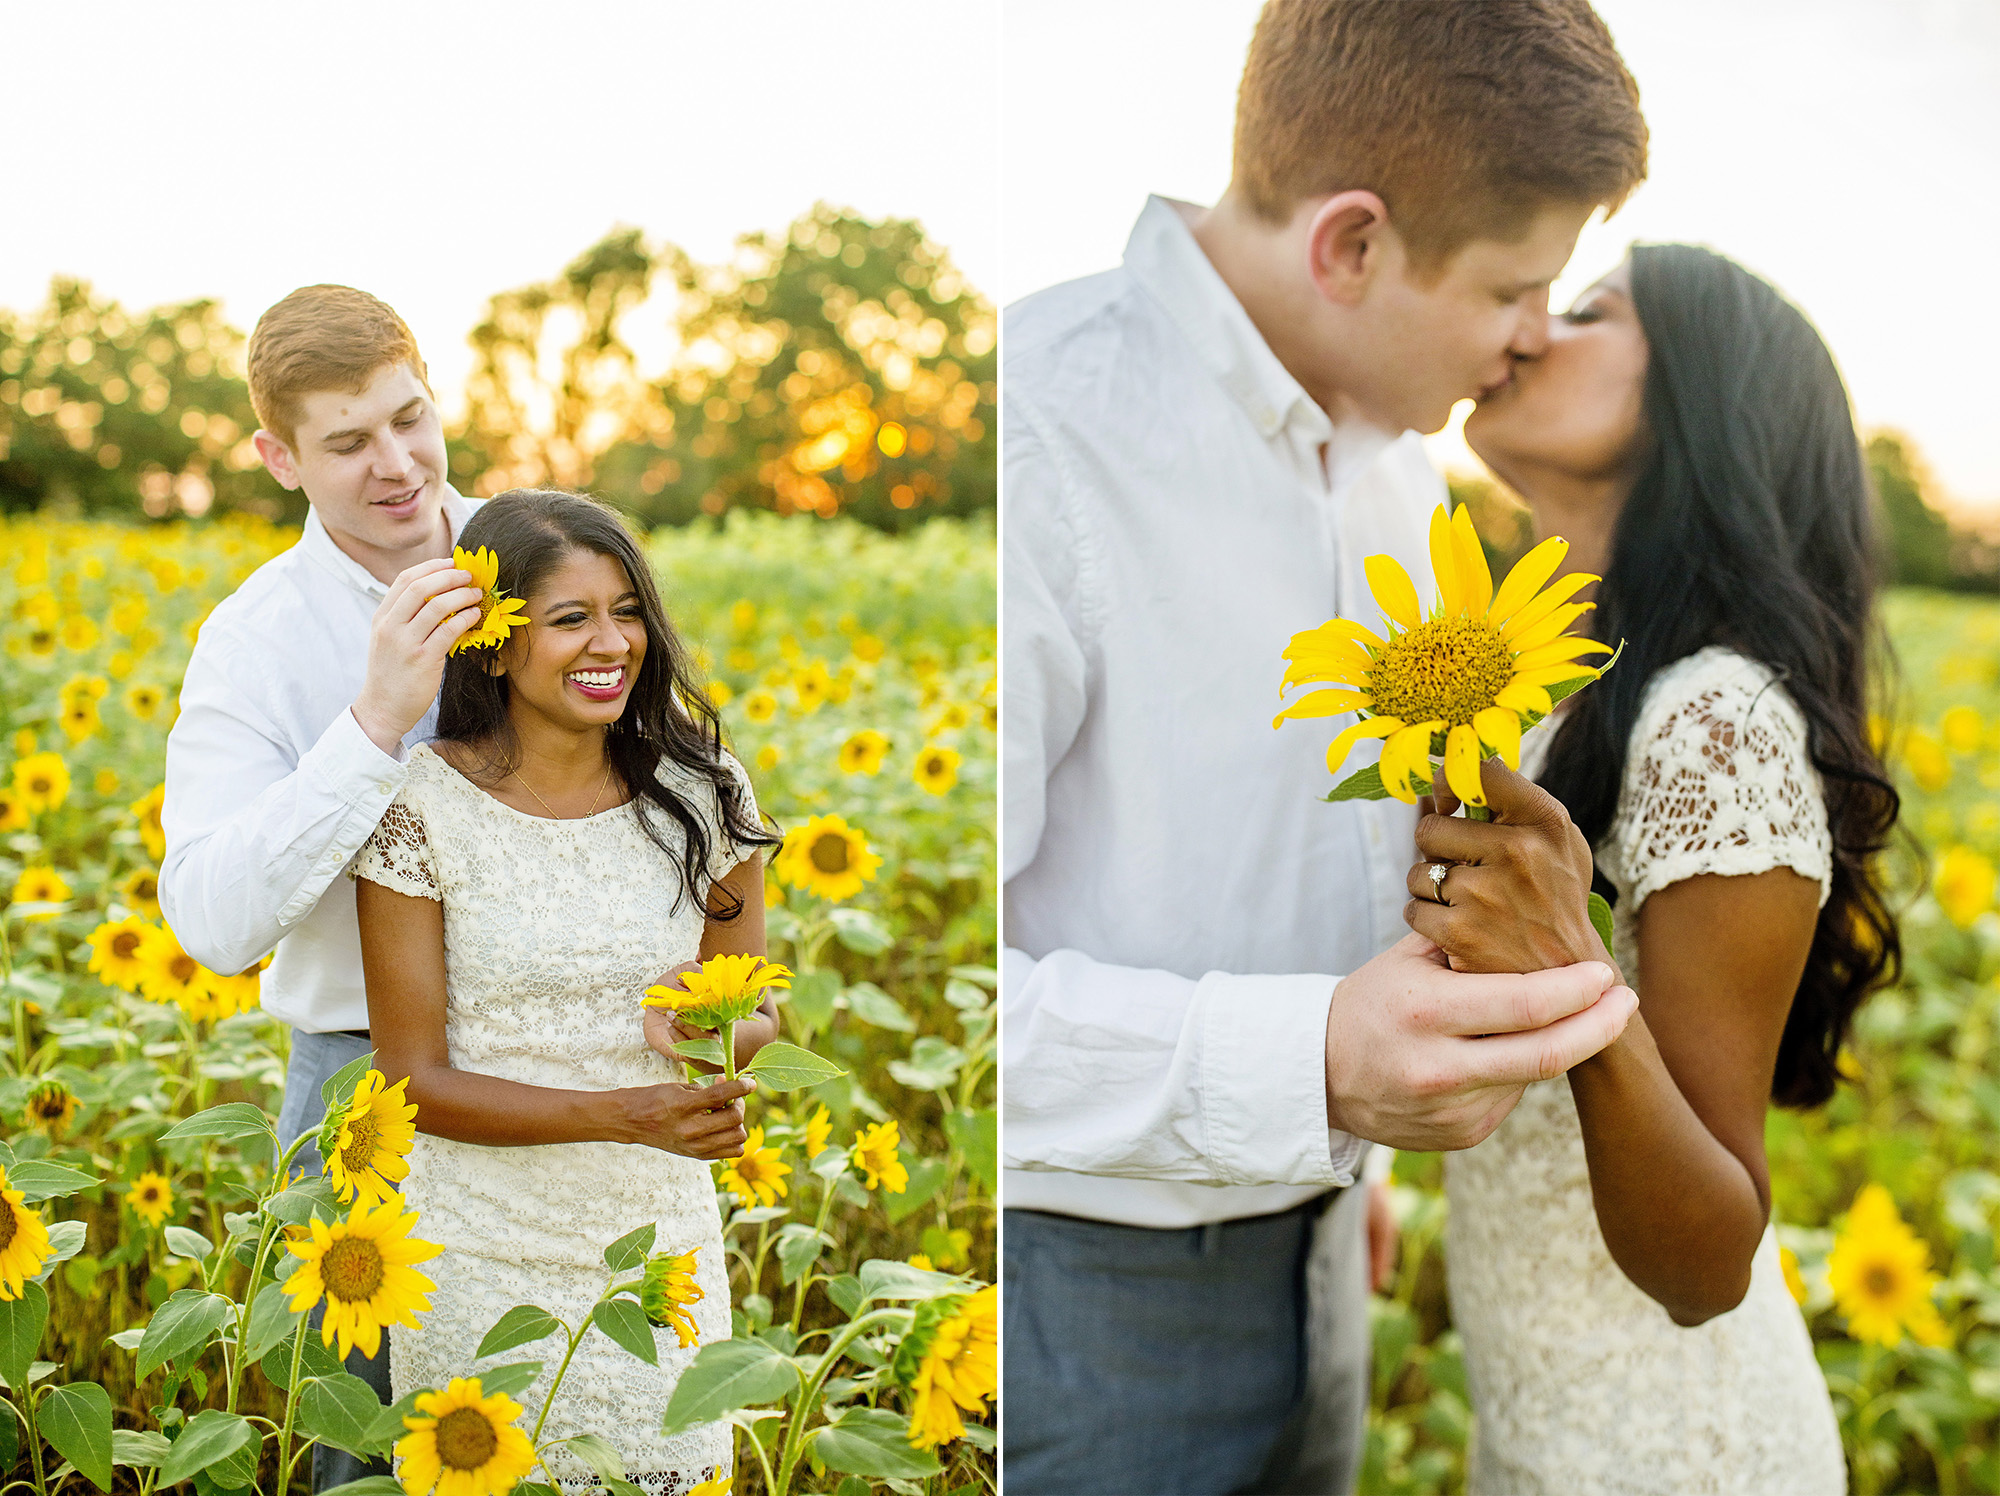 Seriously_Sabrina_Photography_Lexington_Midway_Kentucky_Engagement_Merefield_Sunflowers_Naz_and_Drew18.jpg